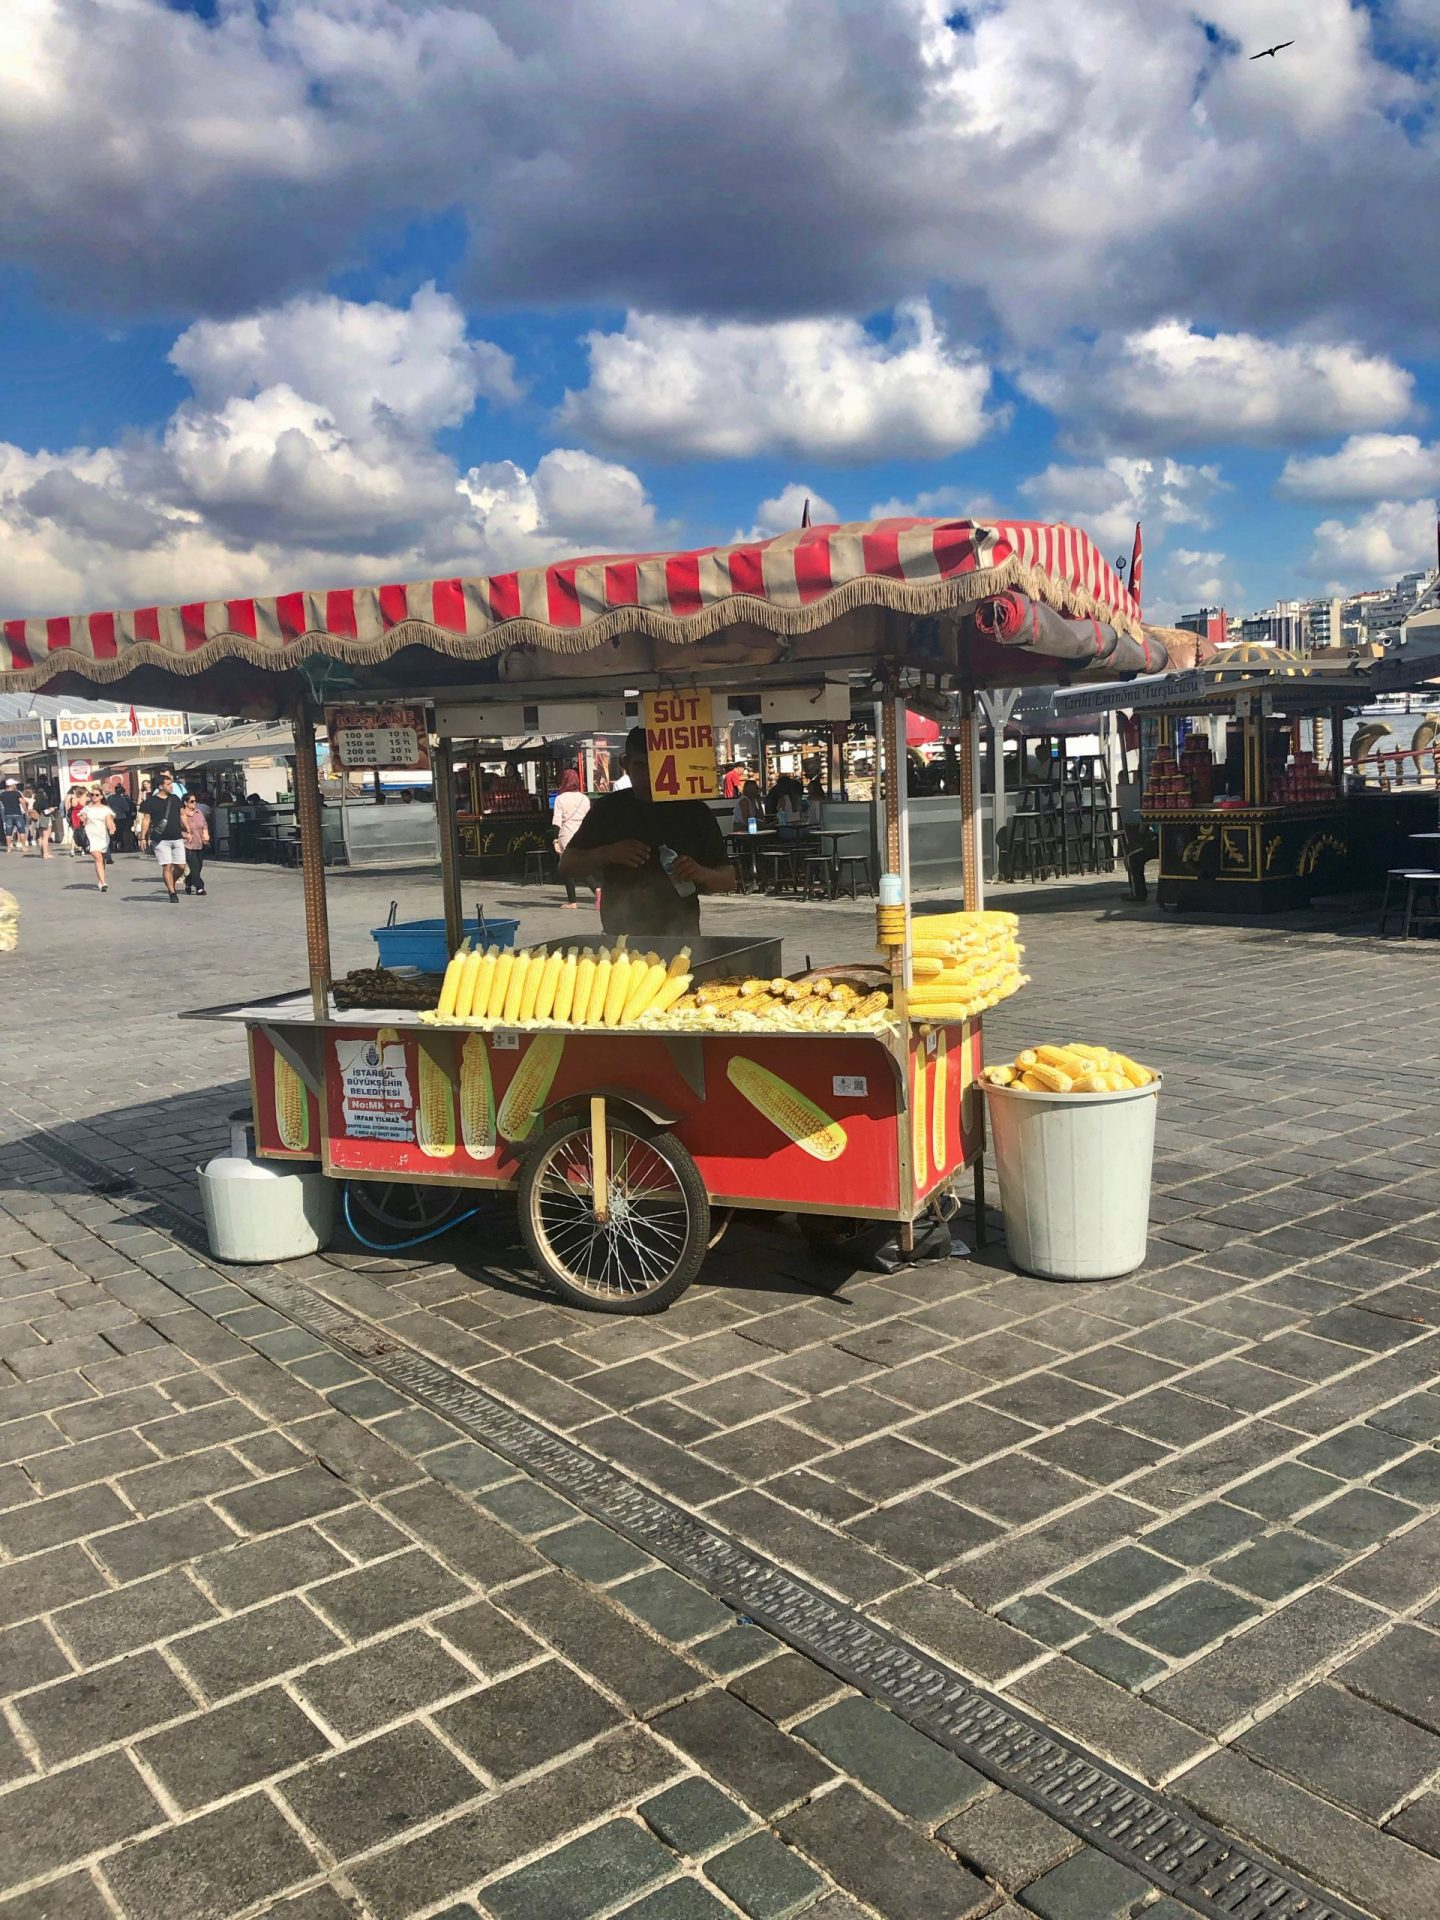 A corn on the cob cart in Istanbul, selling bright yellow corn. A blue sky with thick clouds dictates the background.